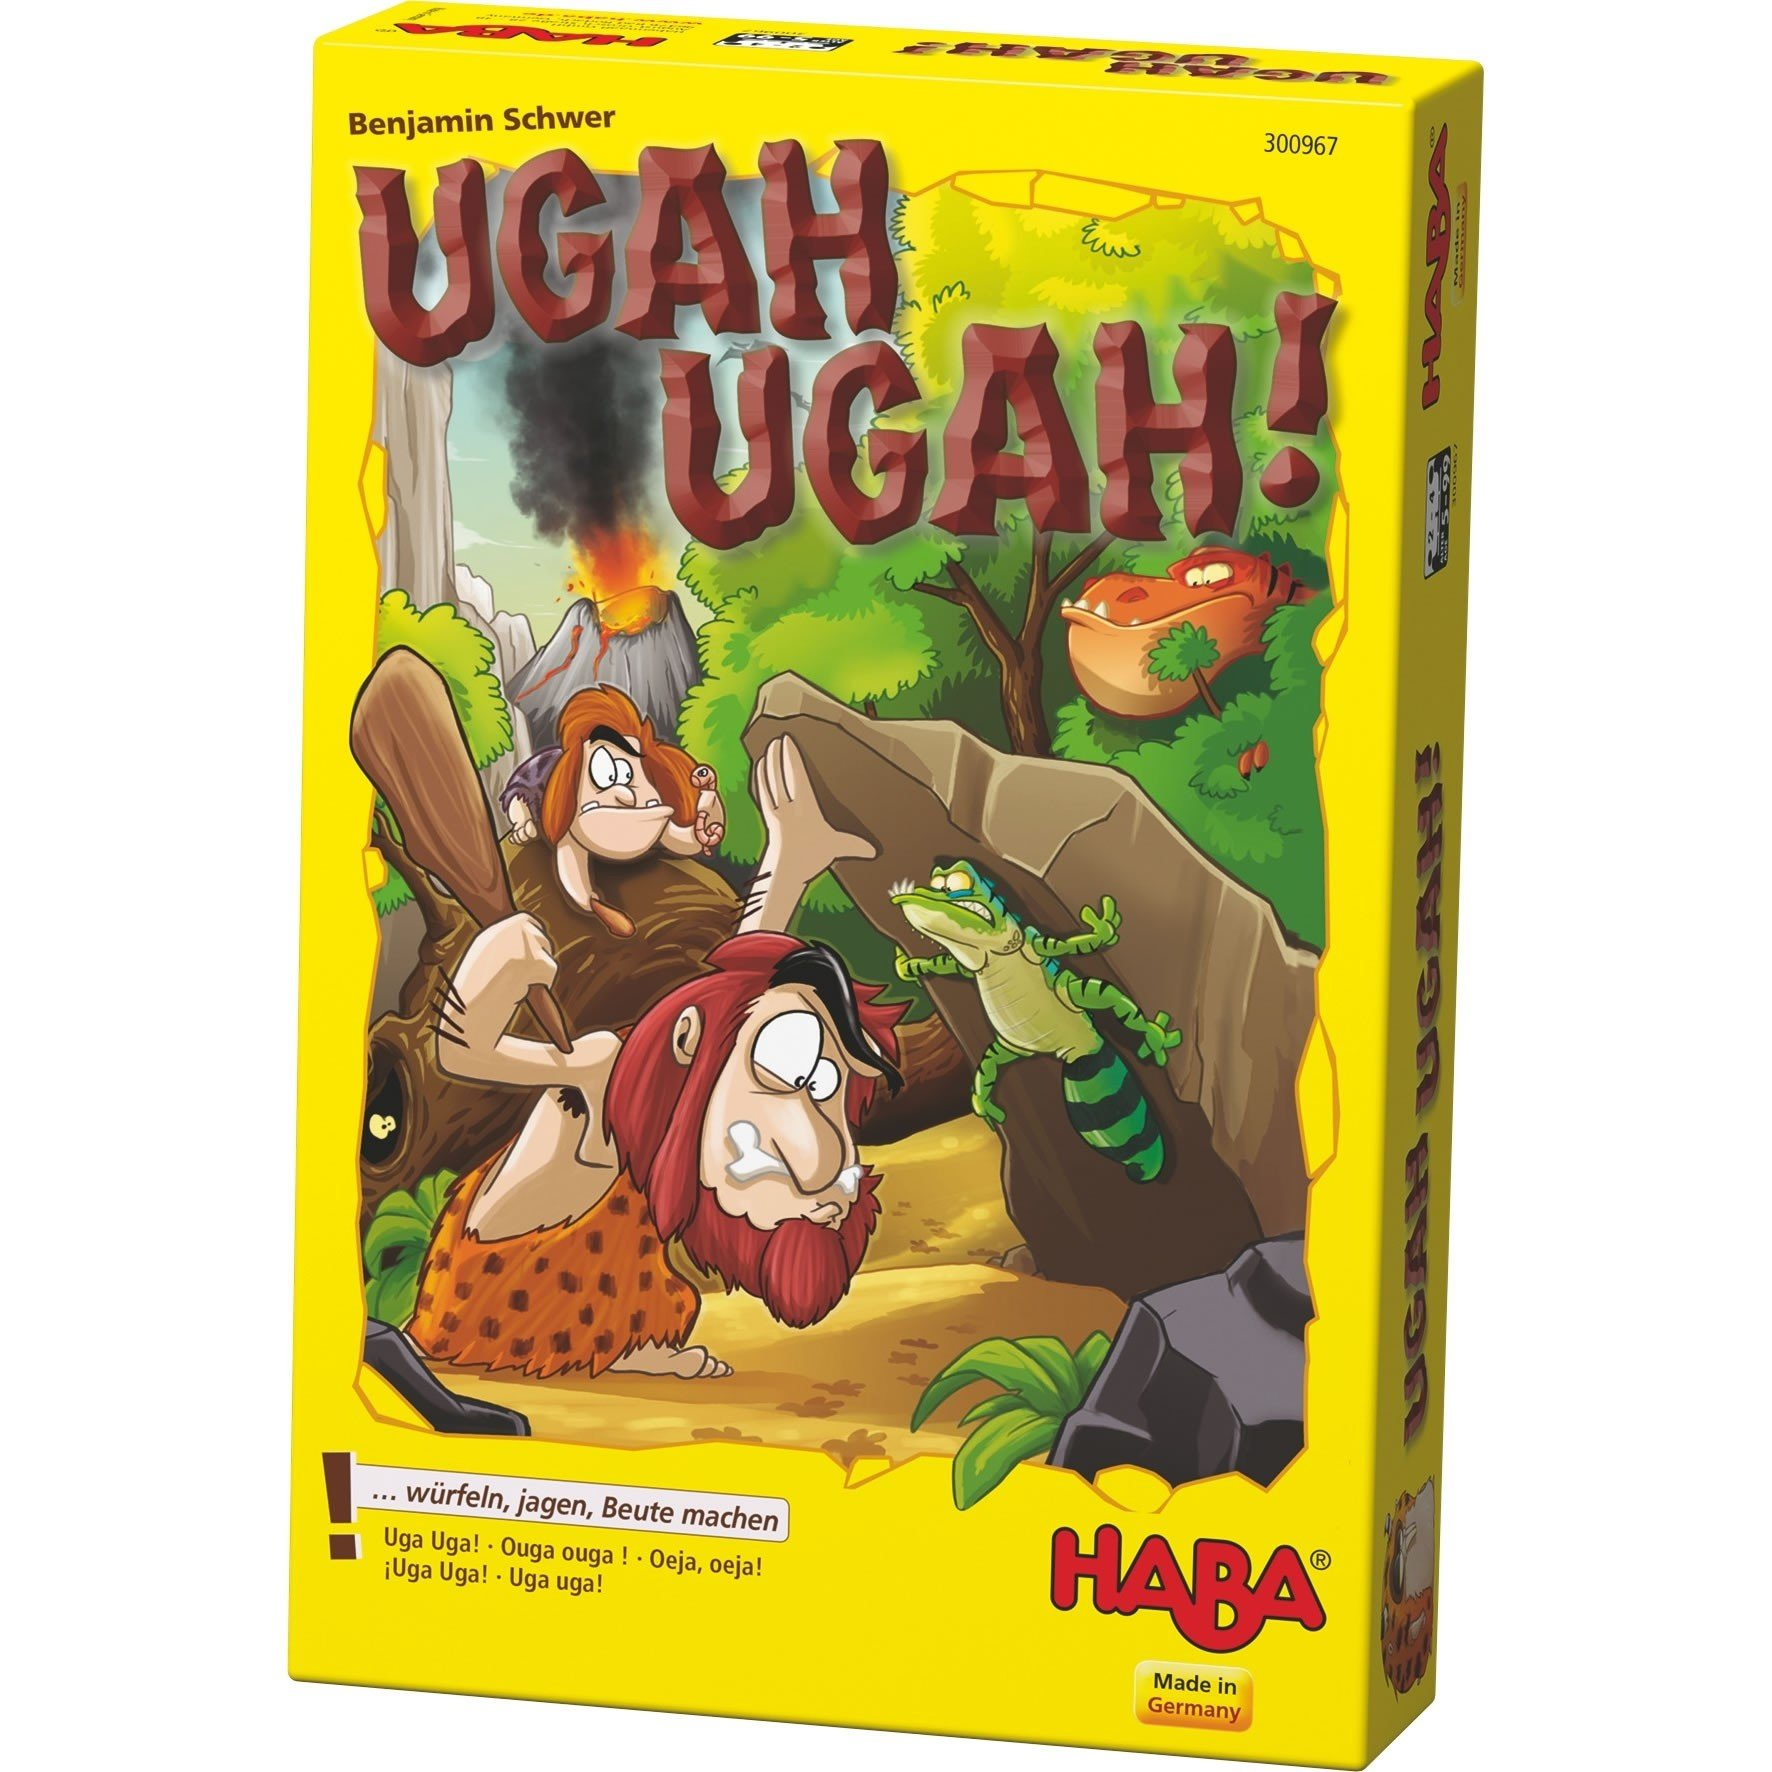 HABA Ugah Ugah! A Prehistoric Dice Game for Ages 5+ (Made in Germany)